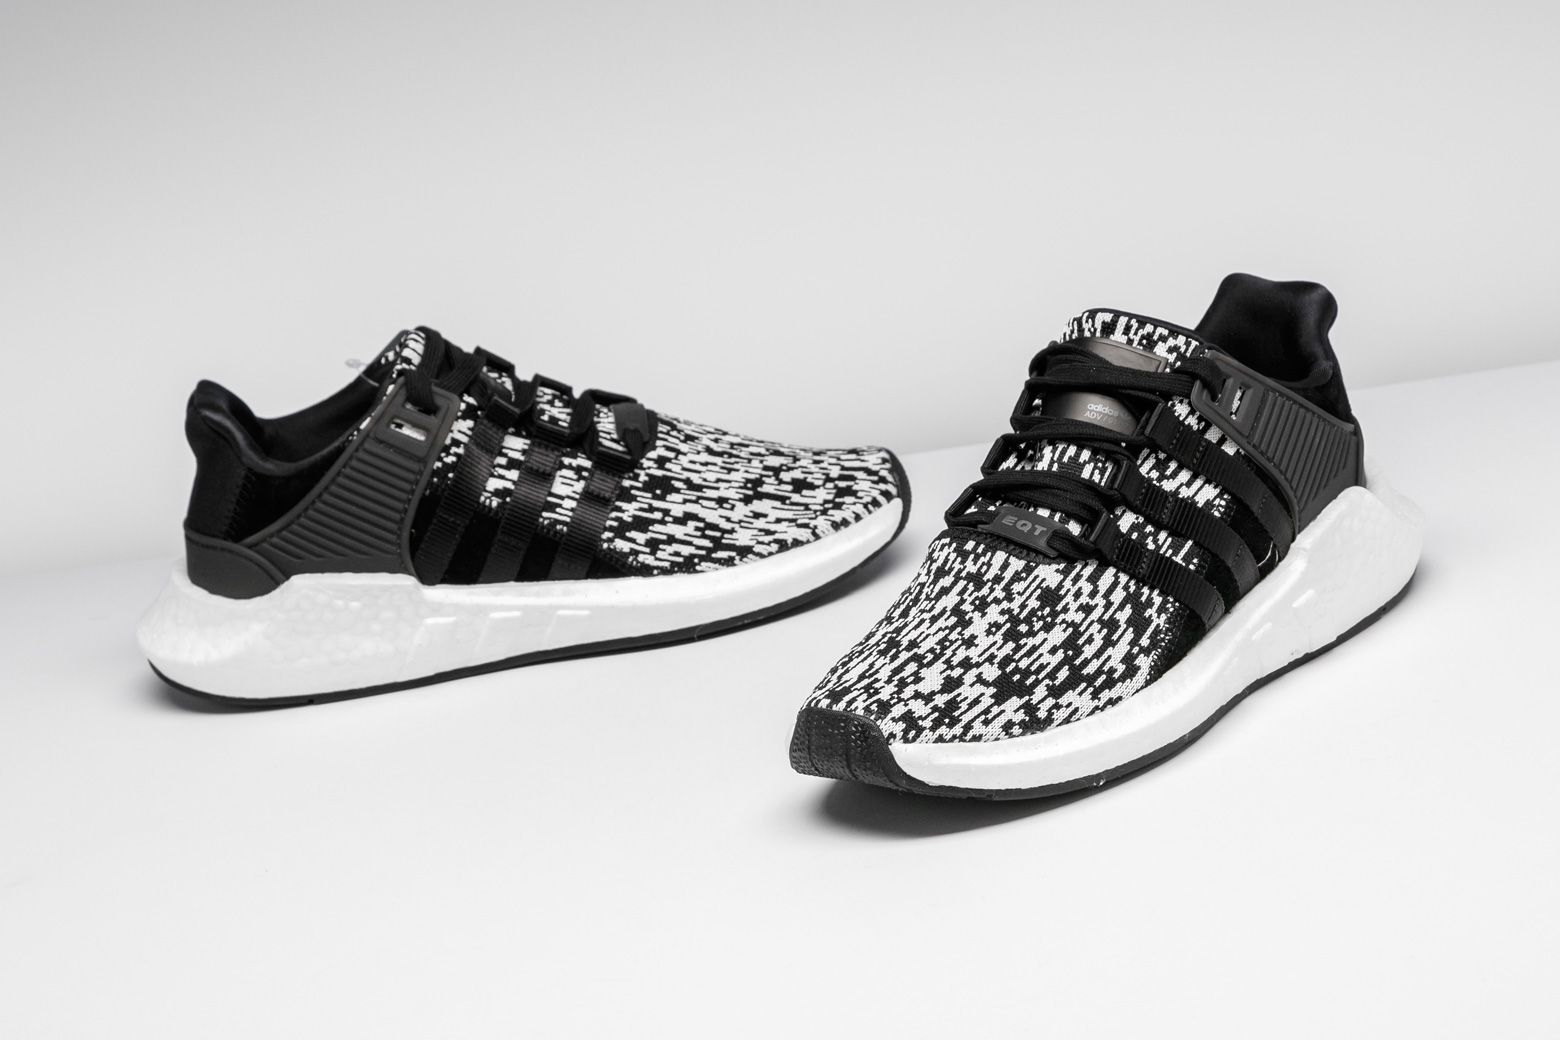 outlet store 8d0f1 337a3 adidas drew inspiration from the